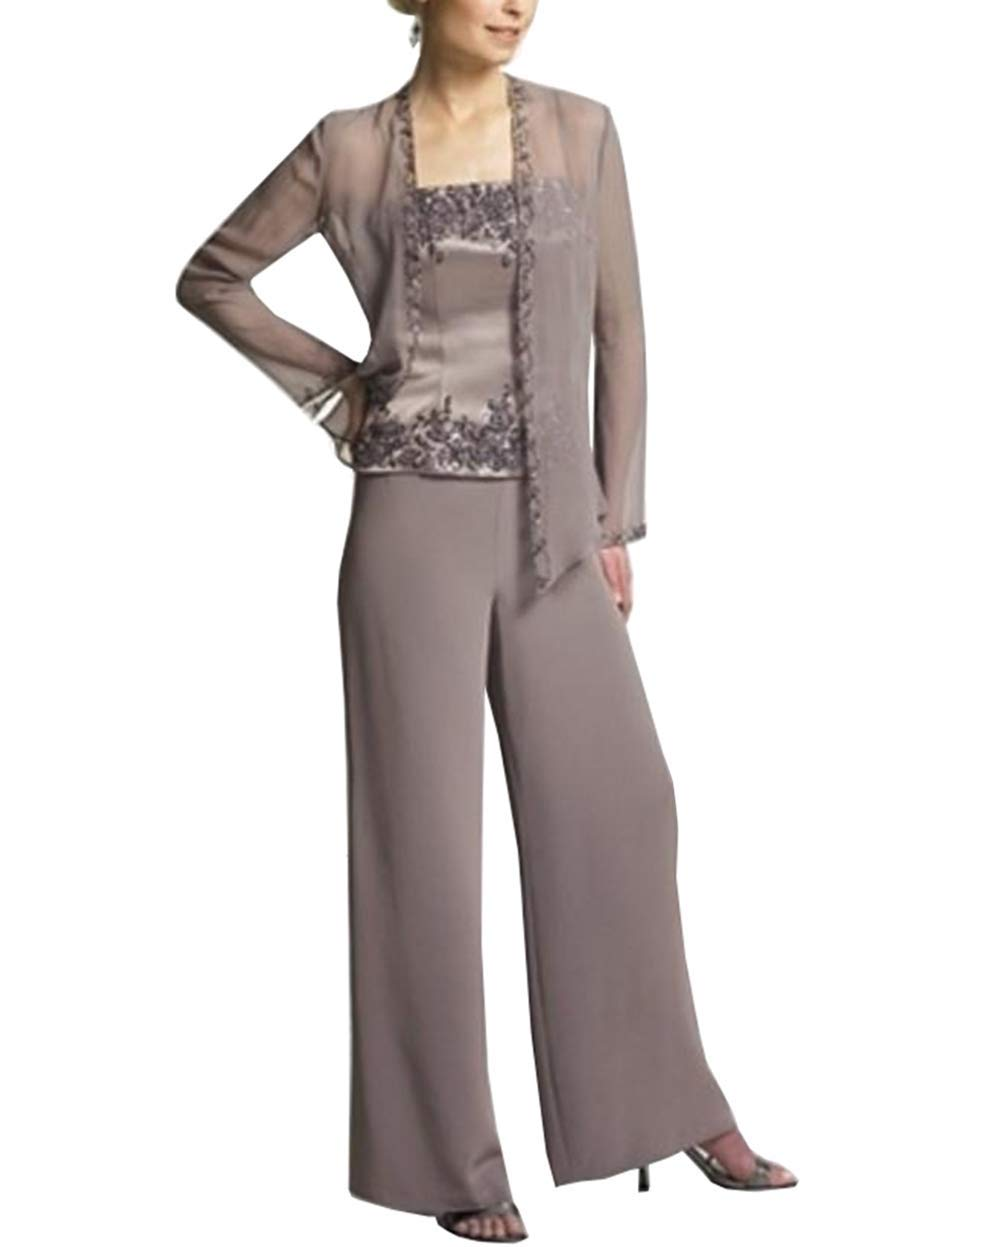 6c4318efba3e2 Home Brands Fitty Lell Fitty Lell Women s Chiffon Prom Dresses with Jacket  Mother of The Groom Gown Mother of The Bride Pant Suits(US2